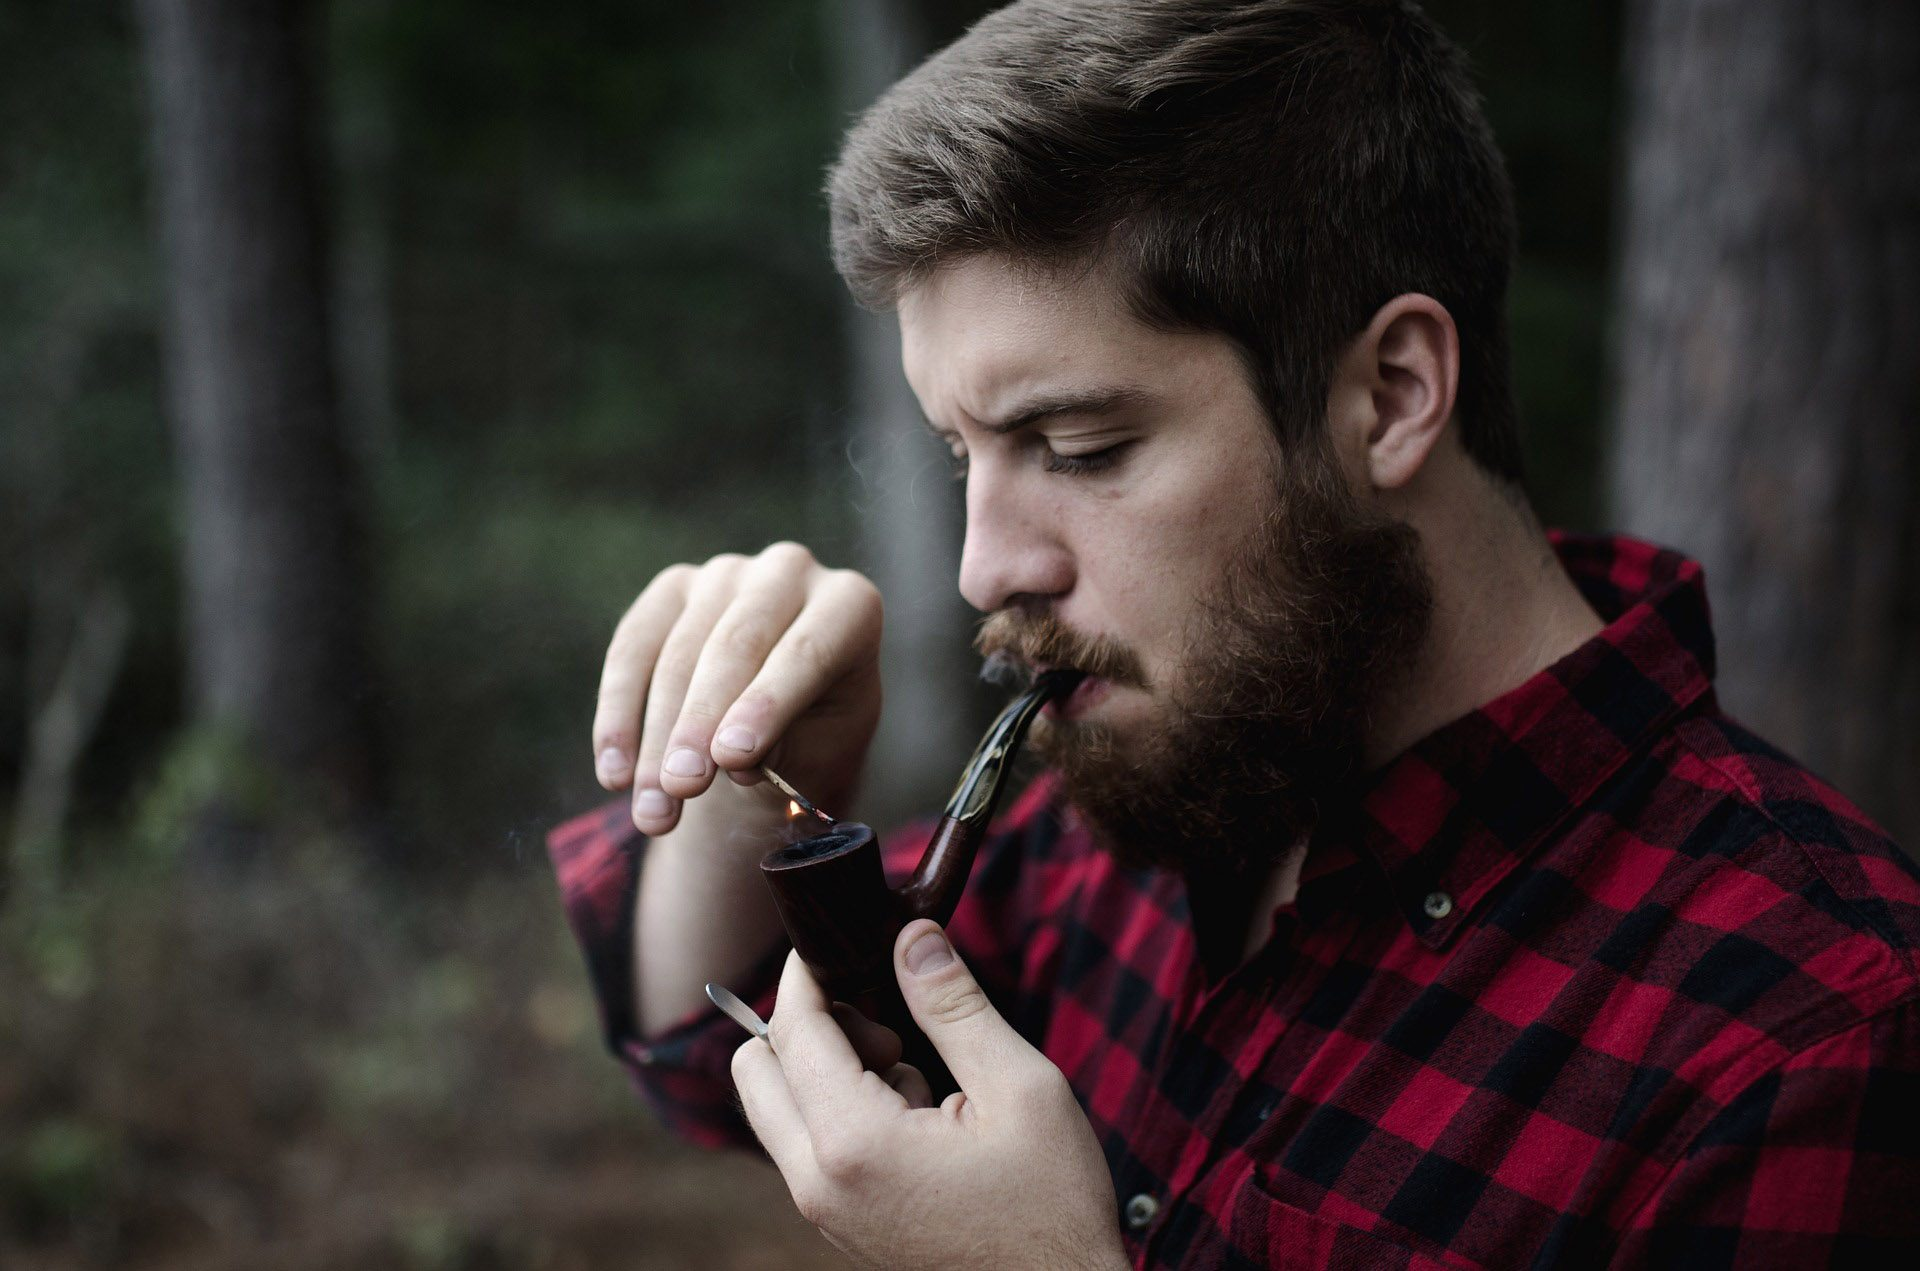 Choice of a smoking pipe